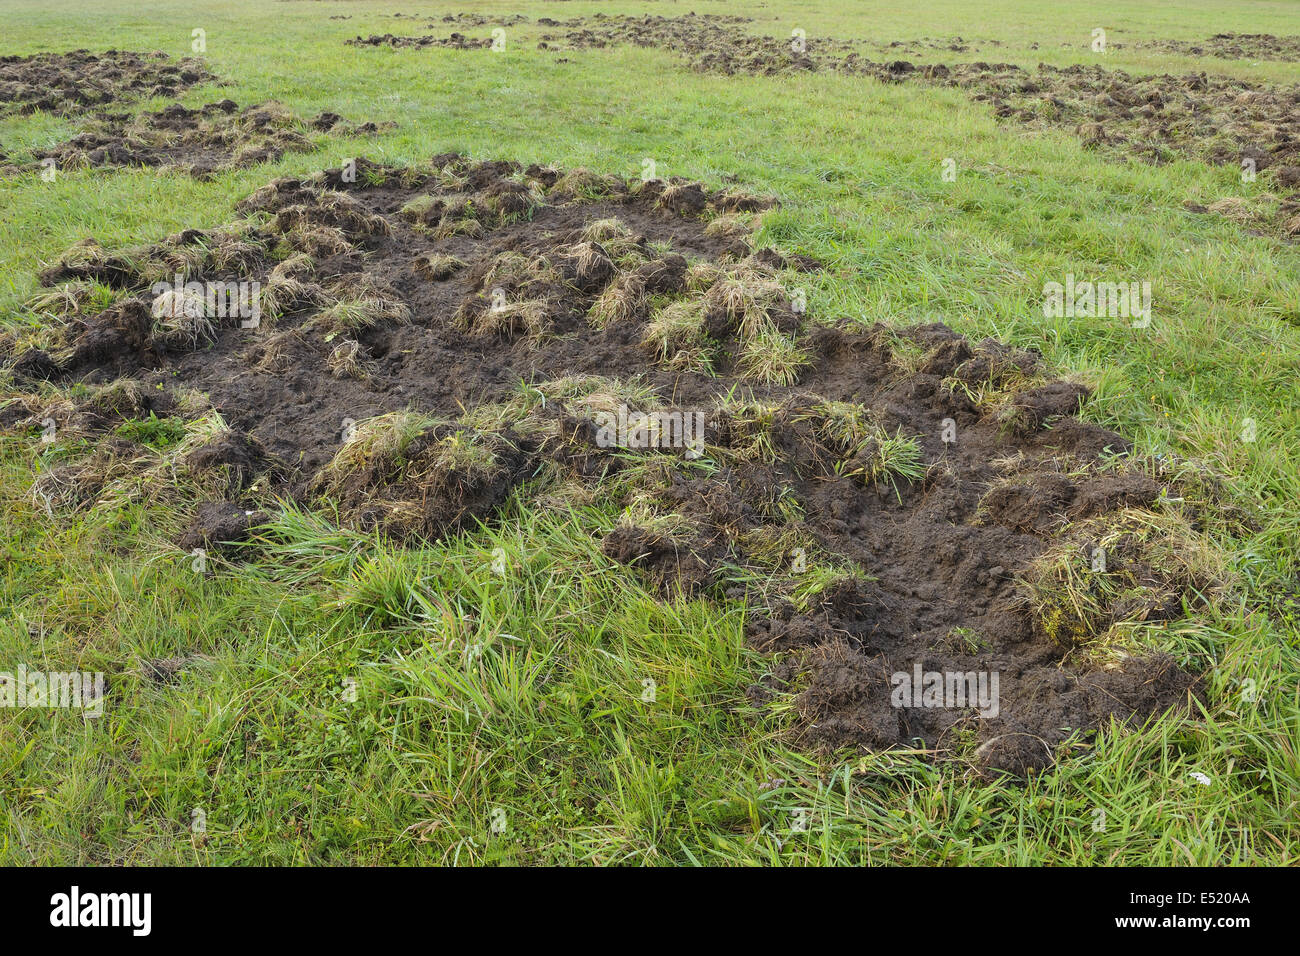 Game damage by wild boars, Germany - Stock Image